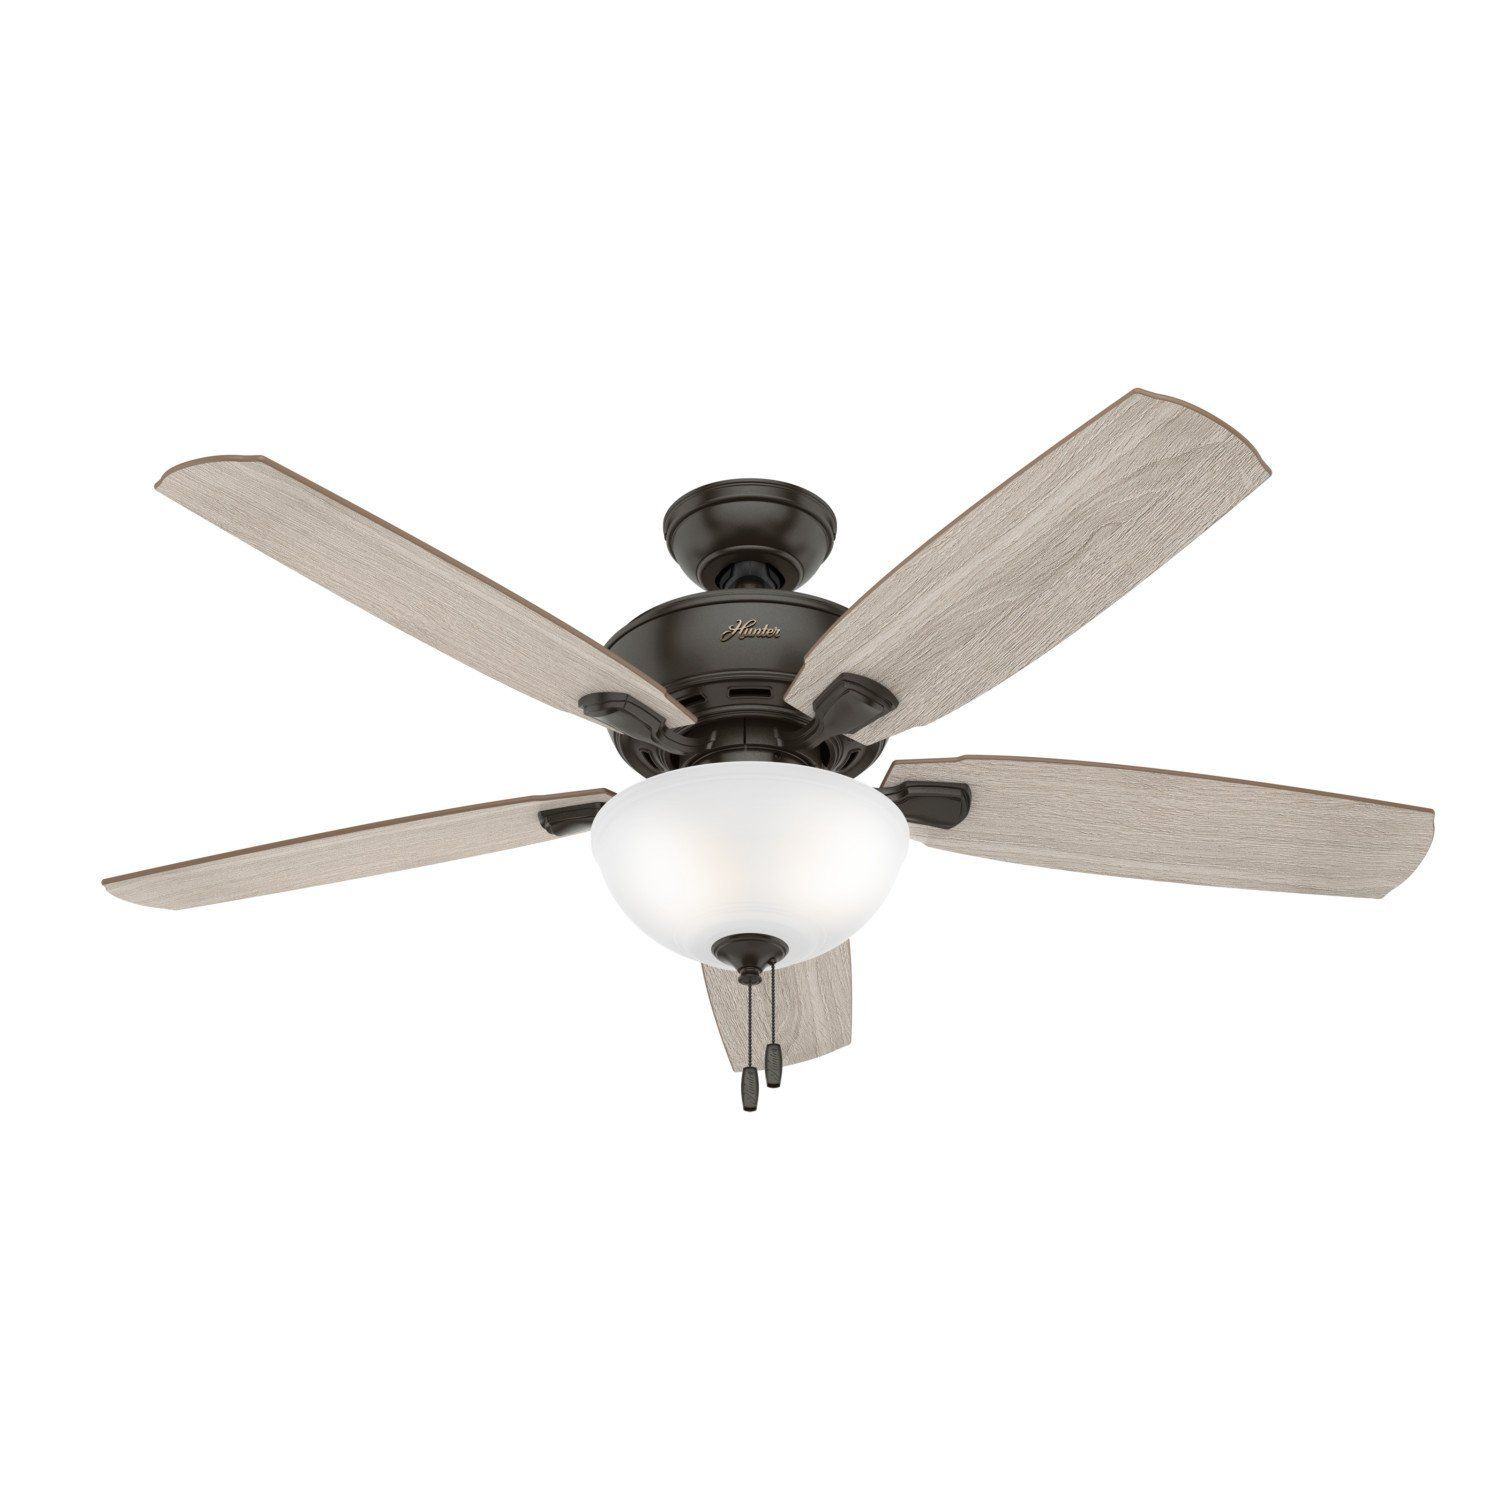 Creekside With Led Light 52 Inch In 2021 Ceiling Fan With Light Ceiling Fan Fan Light Ceiling fan with led light